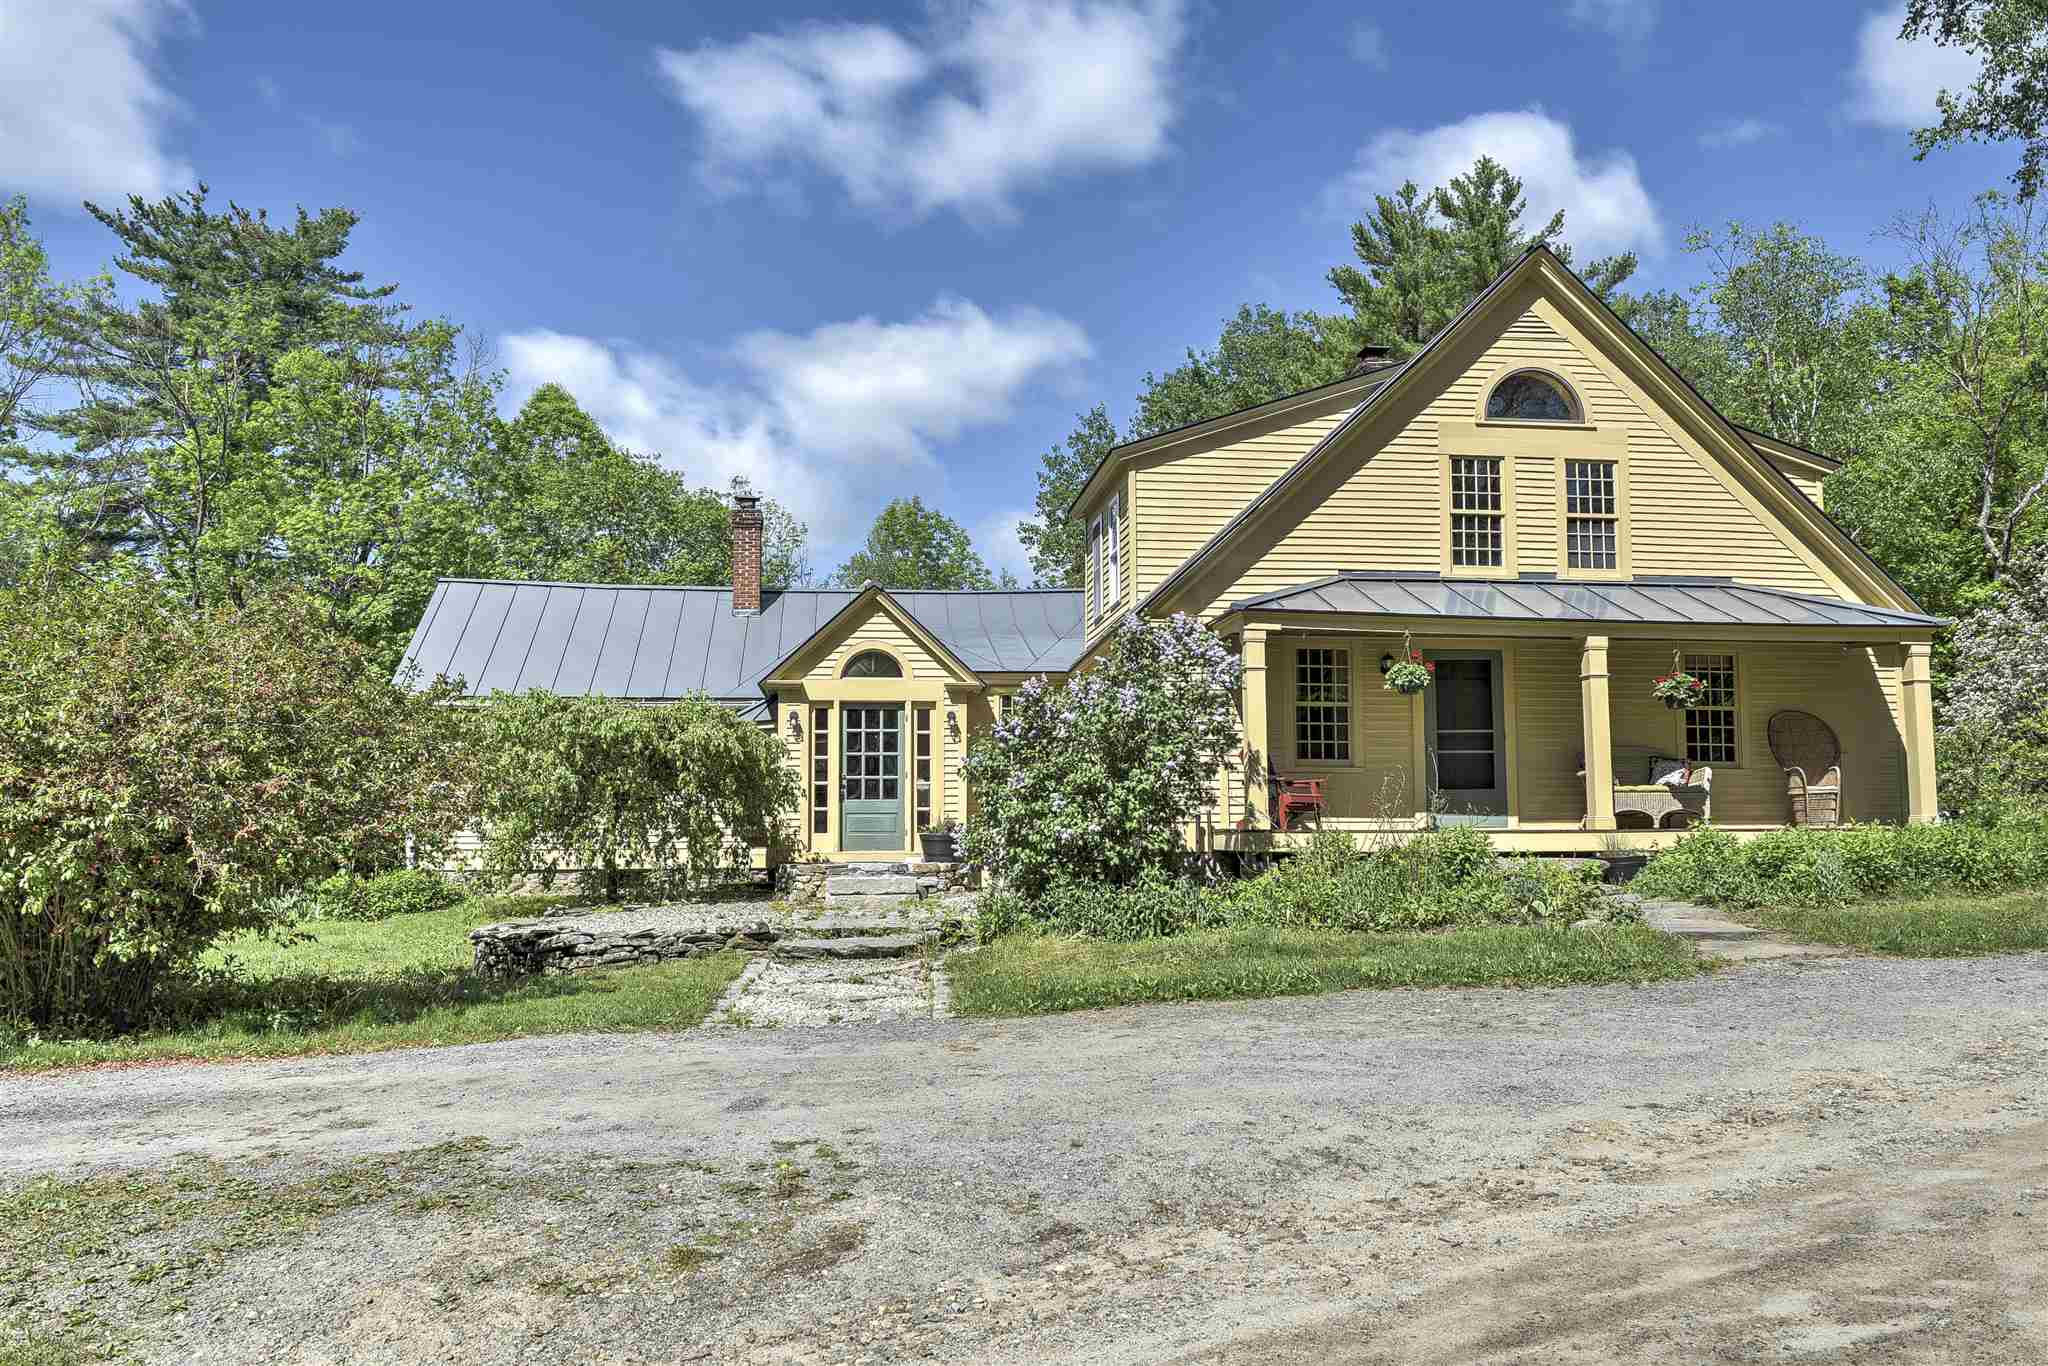 MLS 4808371: 21 Whitney Stage Road, Gilsum NH